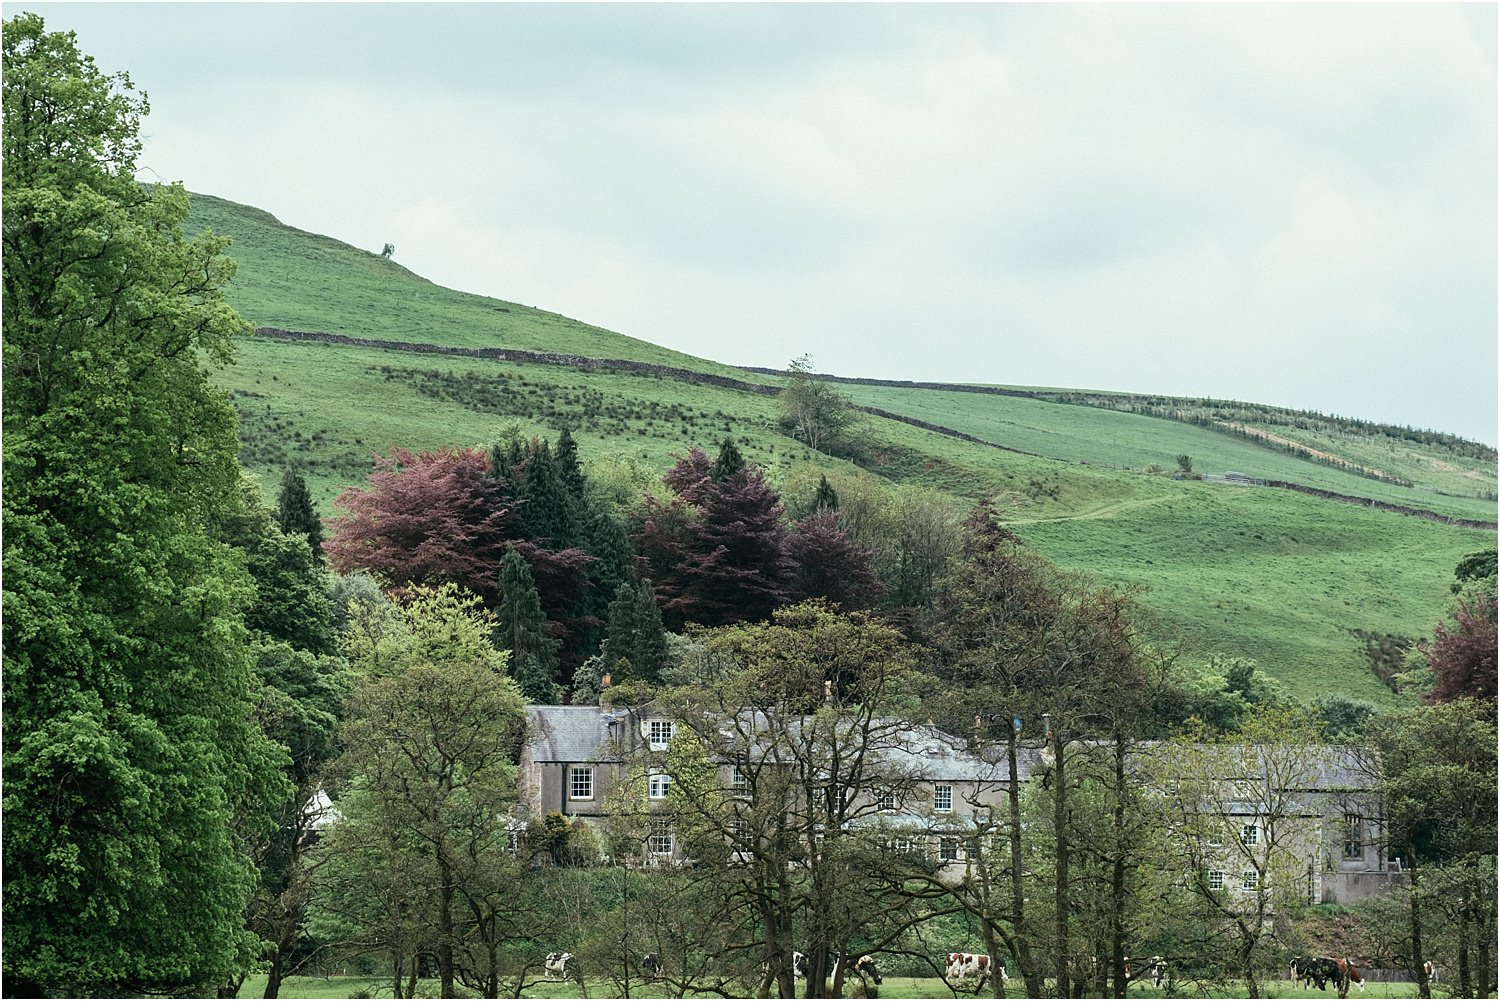 The Inn at Whitewell, nestled in the Lancashire hills